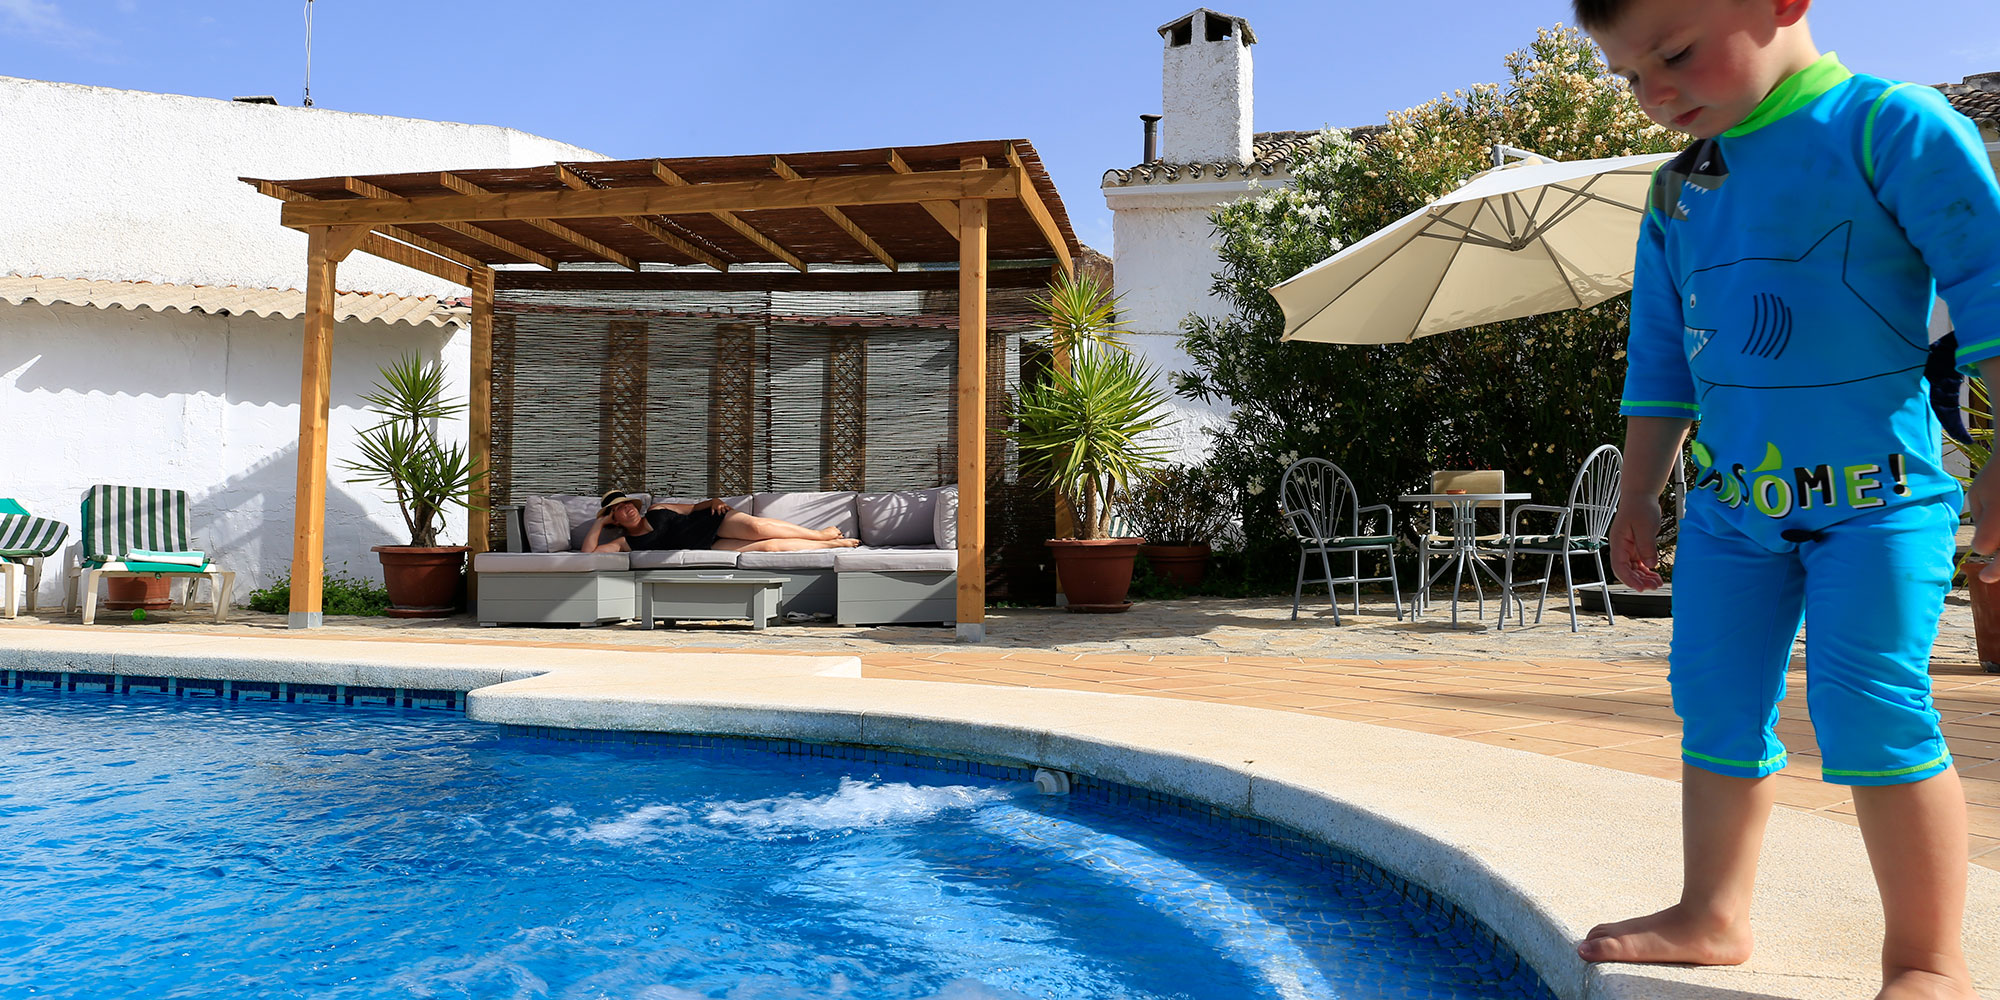 During your motorcycle tour, you will have the best motorcycle rider accommodation with swimming pool